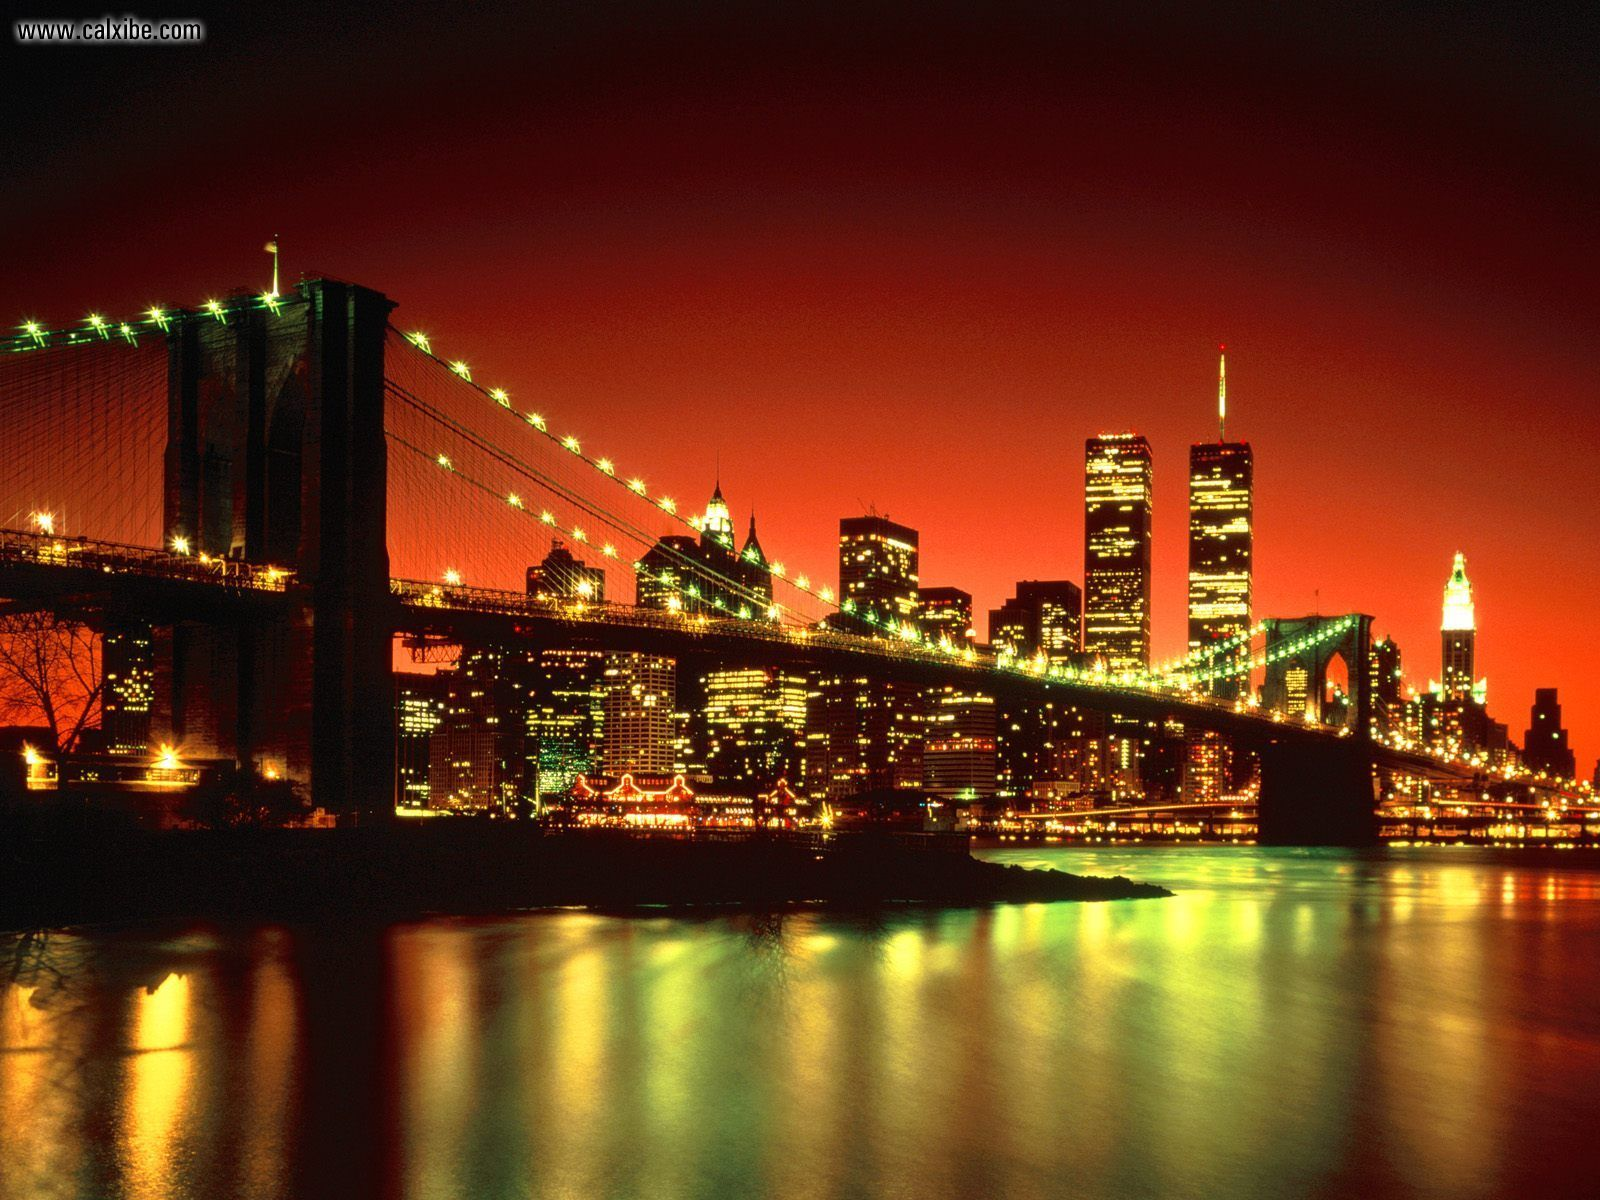 Known places: Brooklyn Bridge, New York, desktop wallpaper nr. 4354